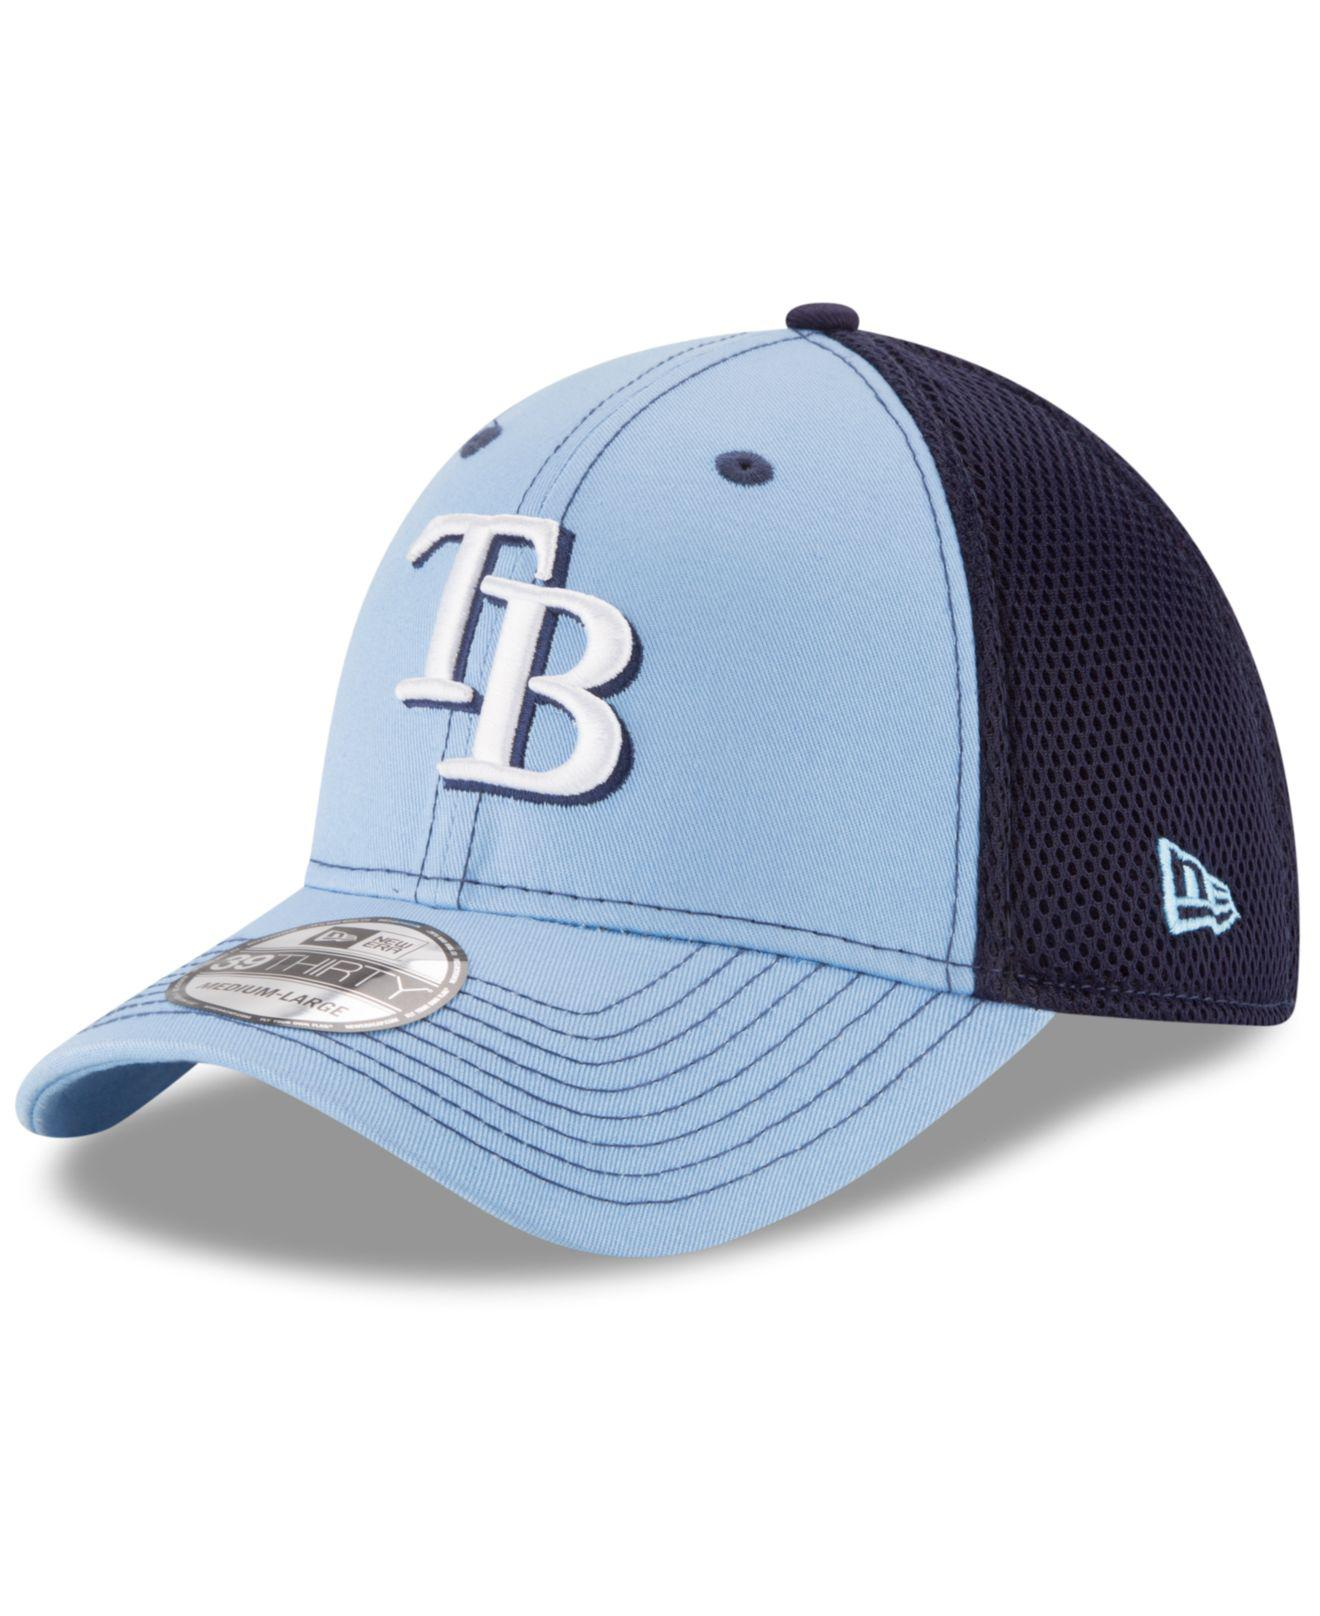 Lyst - KTZ Tampa Bay Rays Team Front Neo 39thirty Cap in Black for Men a9ab13320